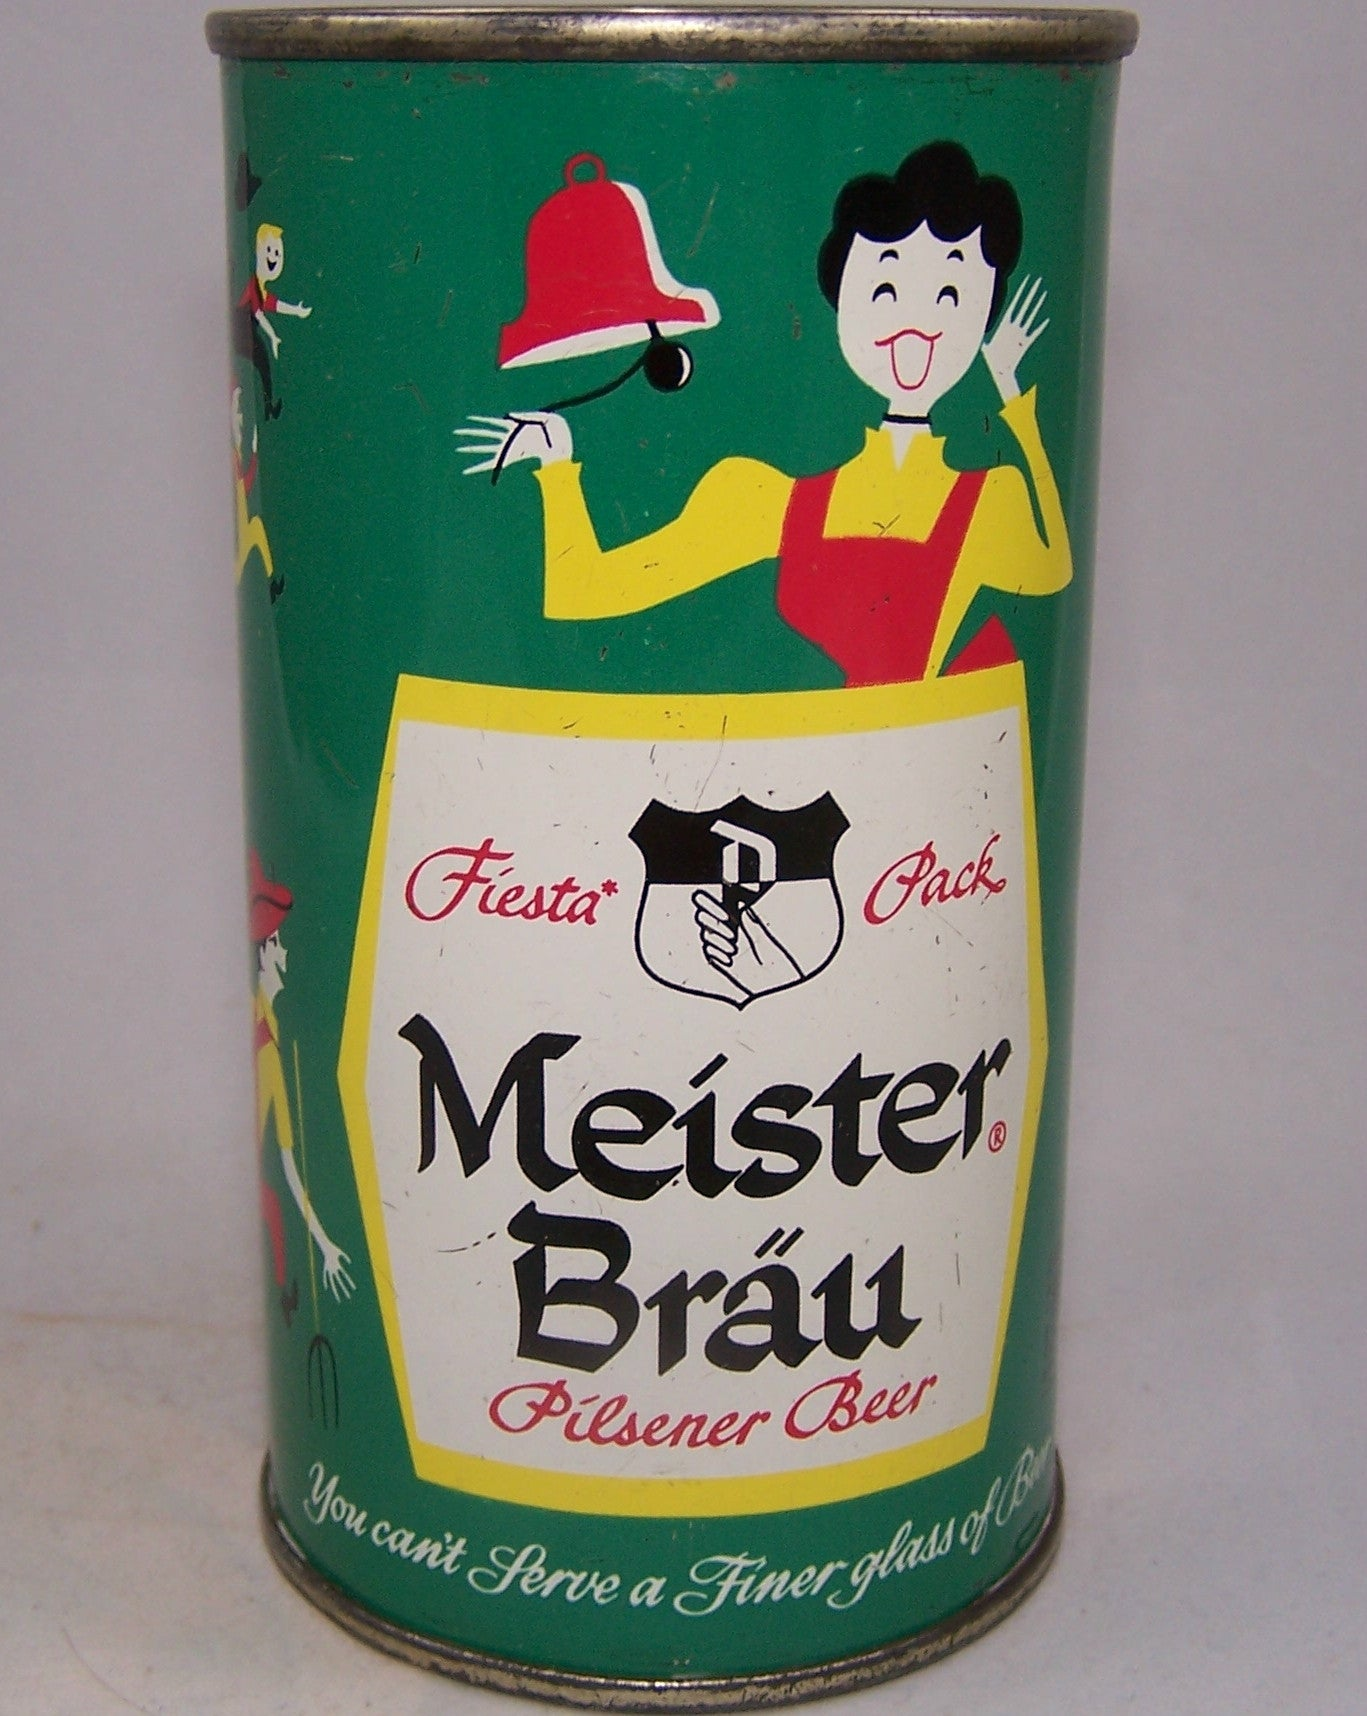 Meister Brau Beer (P In Hand) USBC 97-27, Grade 1 to 1/1+Sold 6/18/16